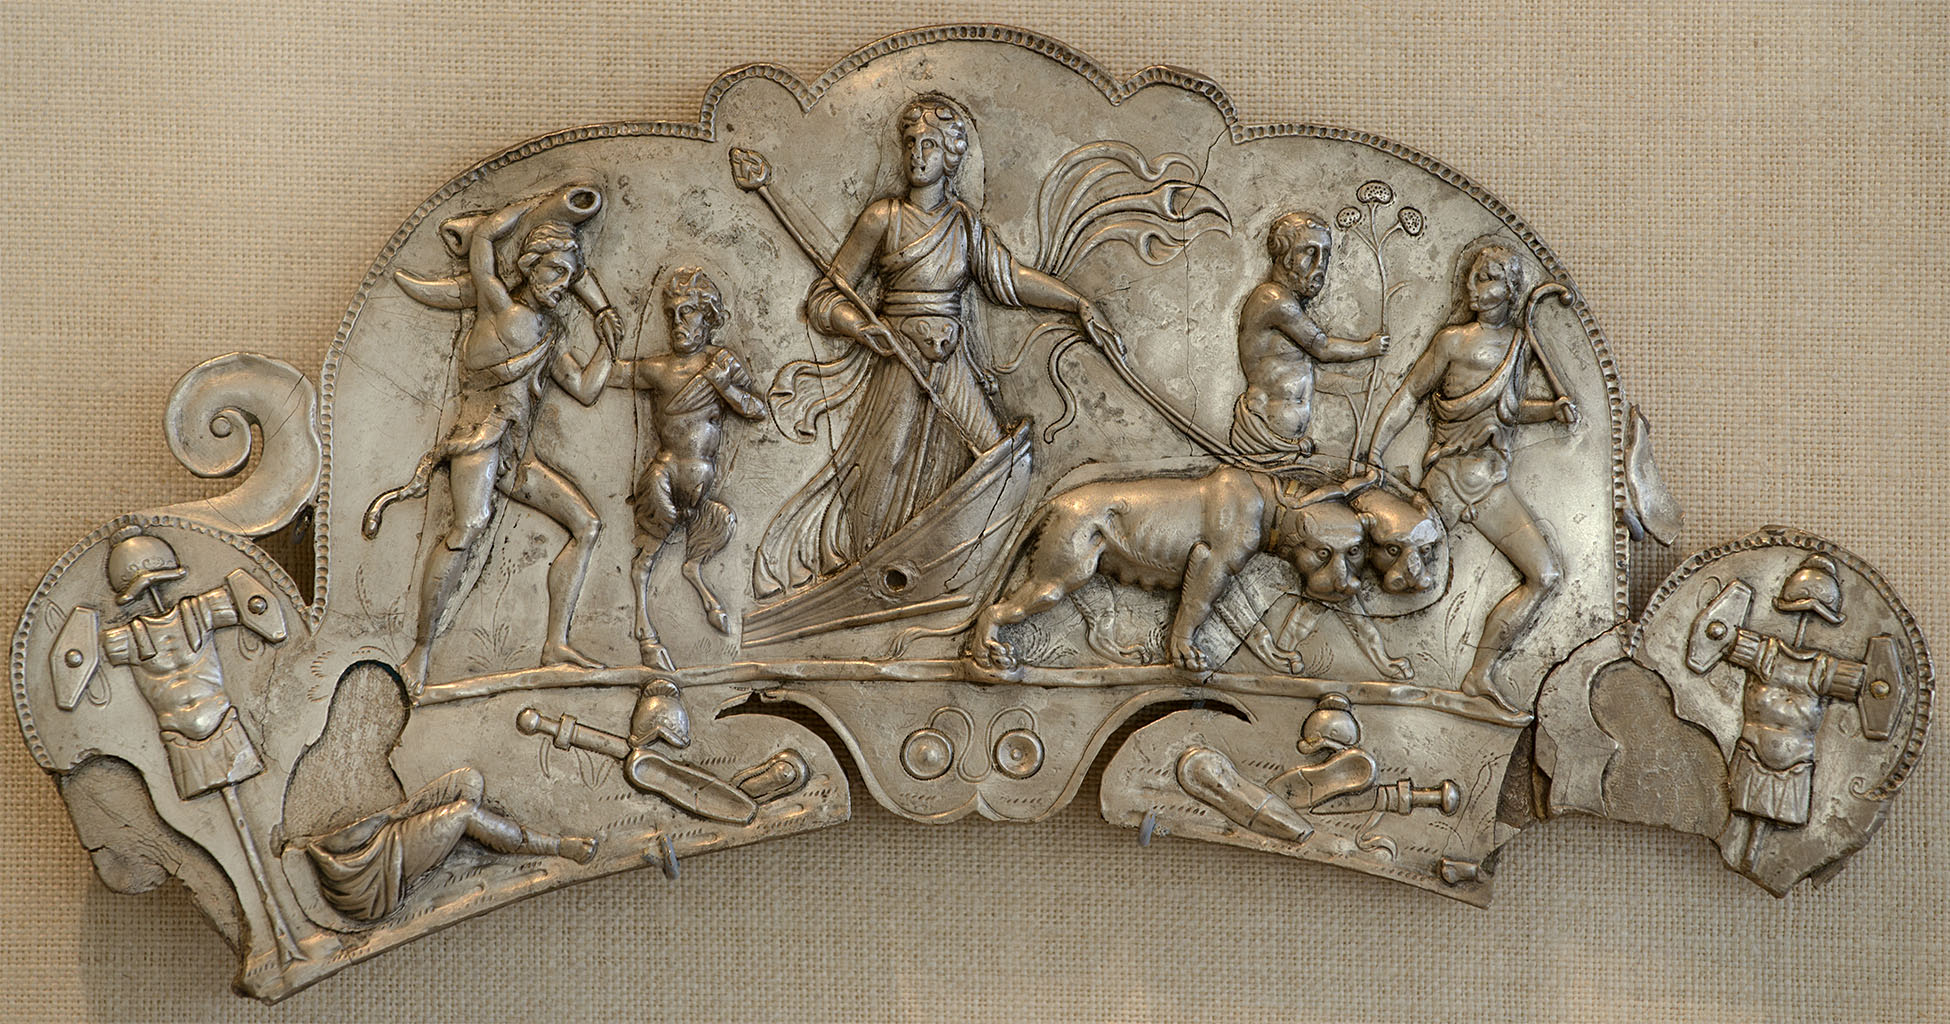 Handle of dish with depicting of the Indian triumph of Bacchus. Silver, gilding. Early 3rd century CE.  Inv. No. 54.11.8. New York, the Metropolitan Museum of Art